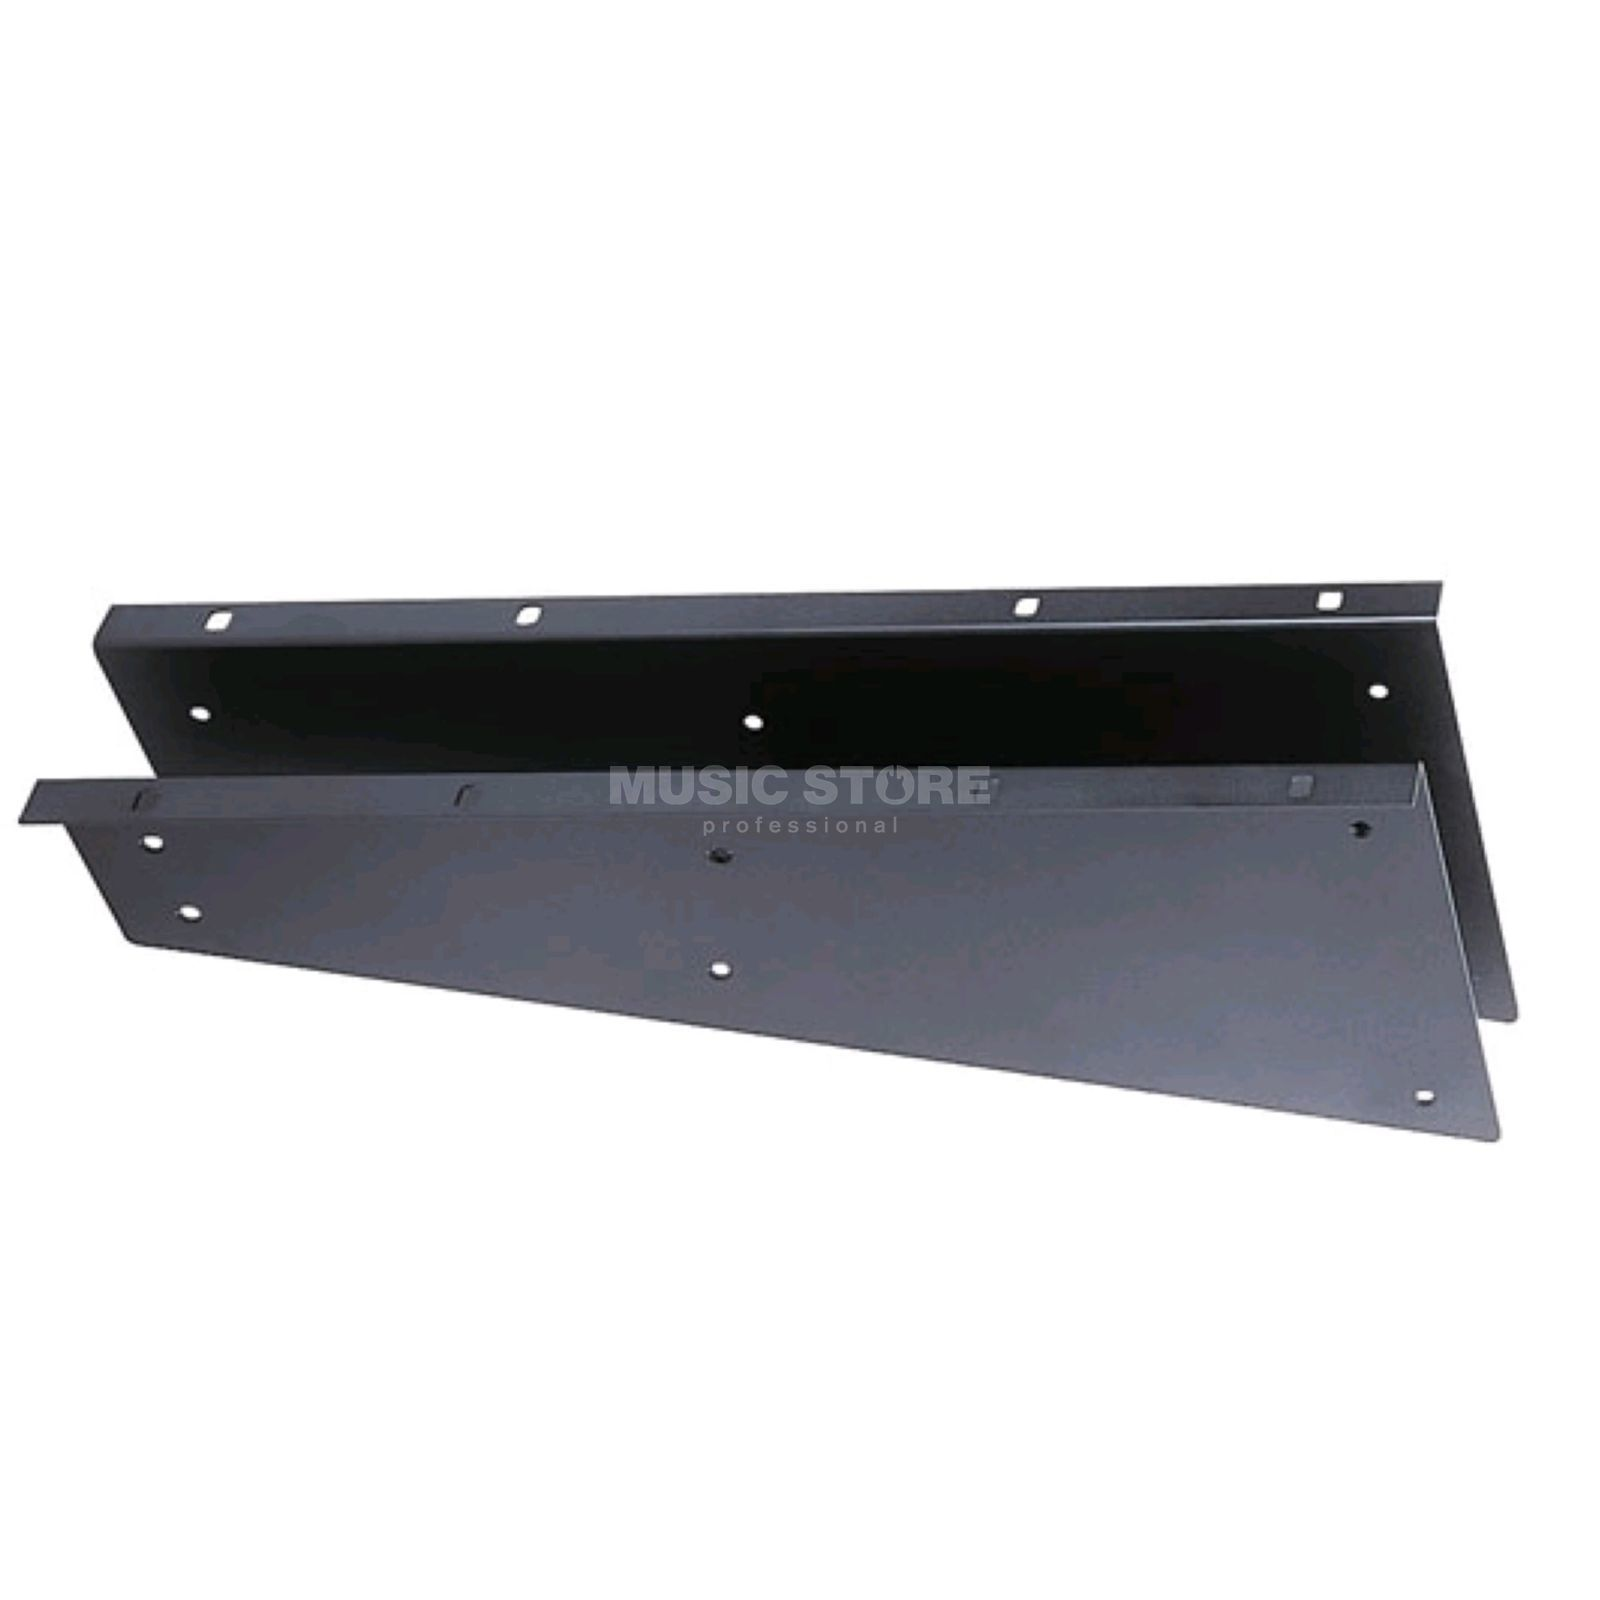 Dynacord RMK-CMS600-3 Rack Mount Set for CMS 600-3 Product Image